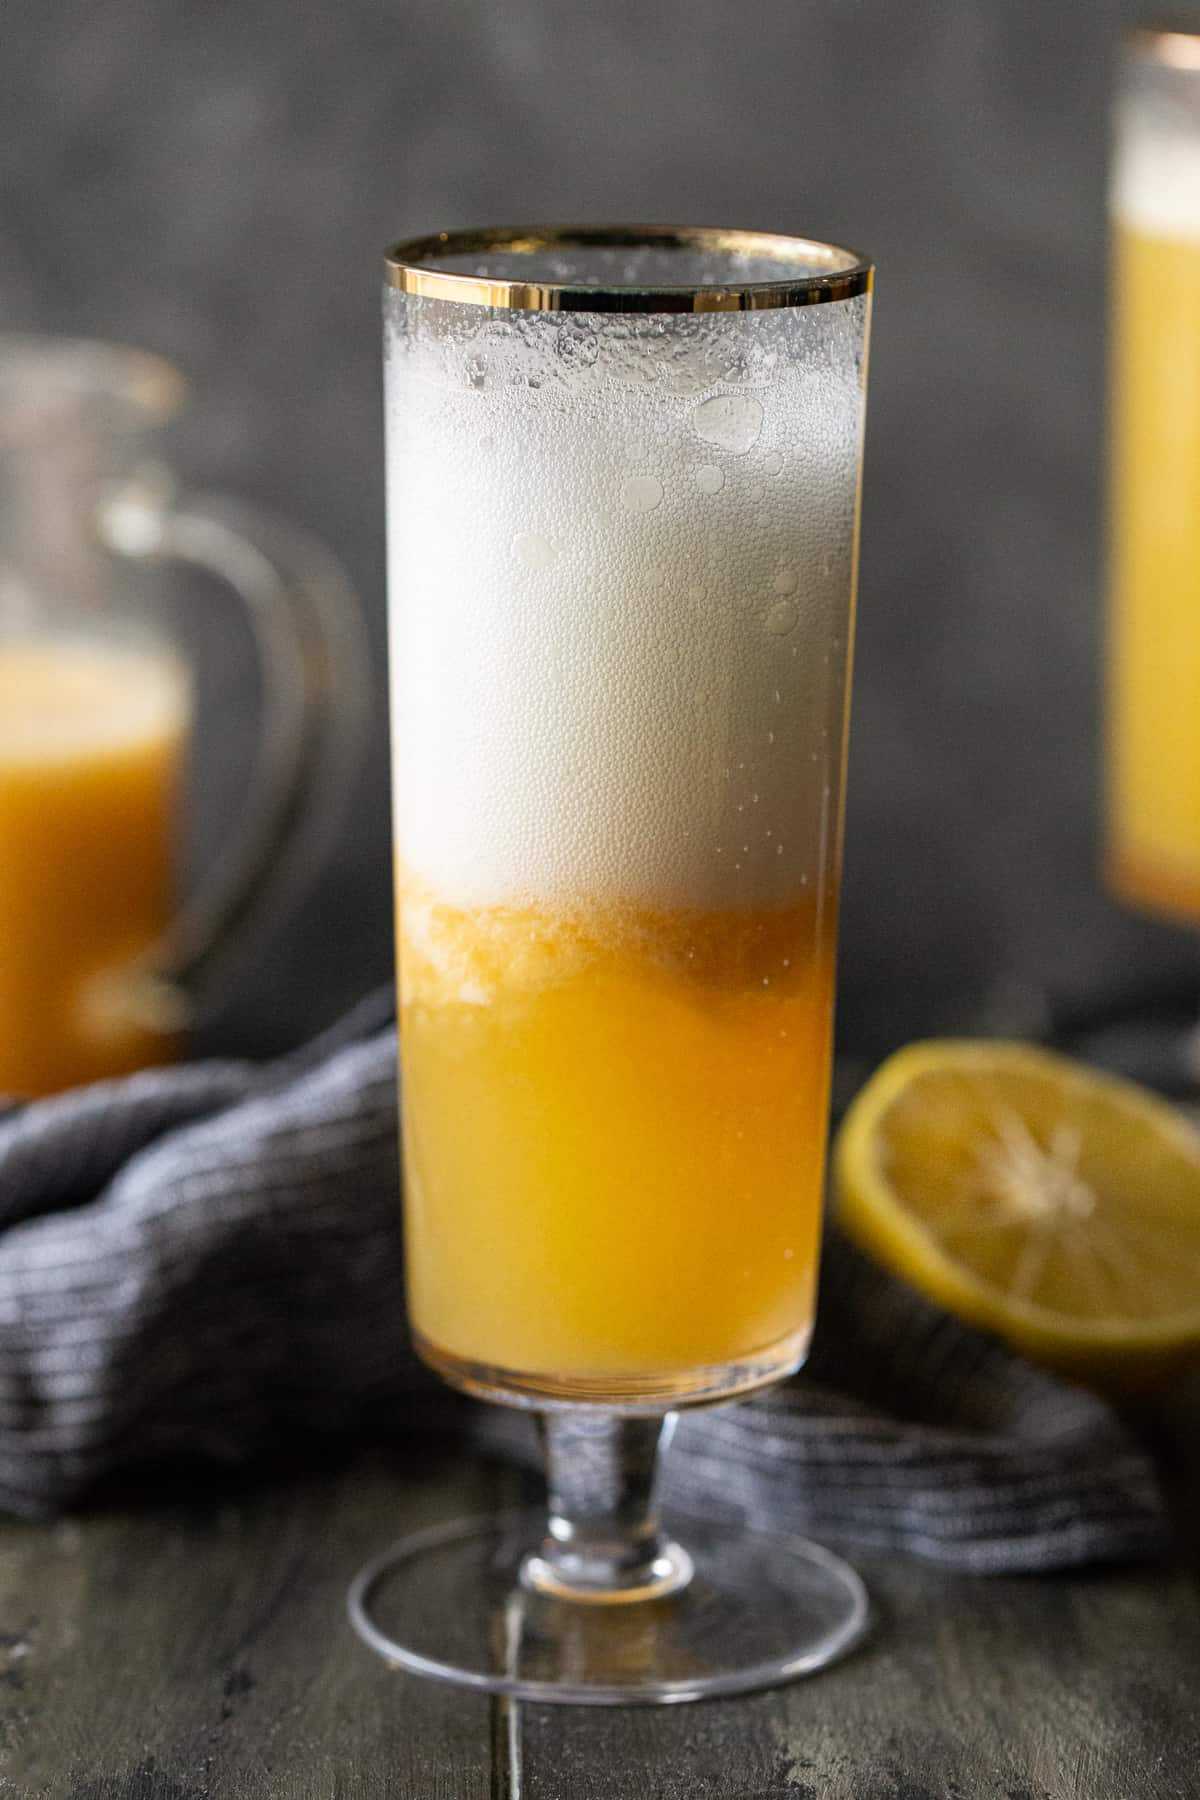 A glass of orange juice next to a pitcher, with Bellini and Non-alcoholic drink.